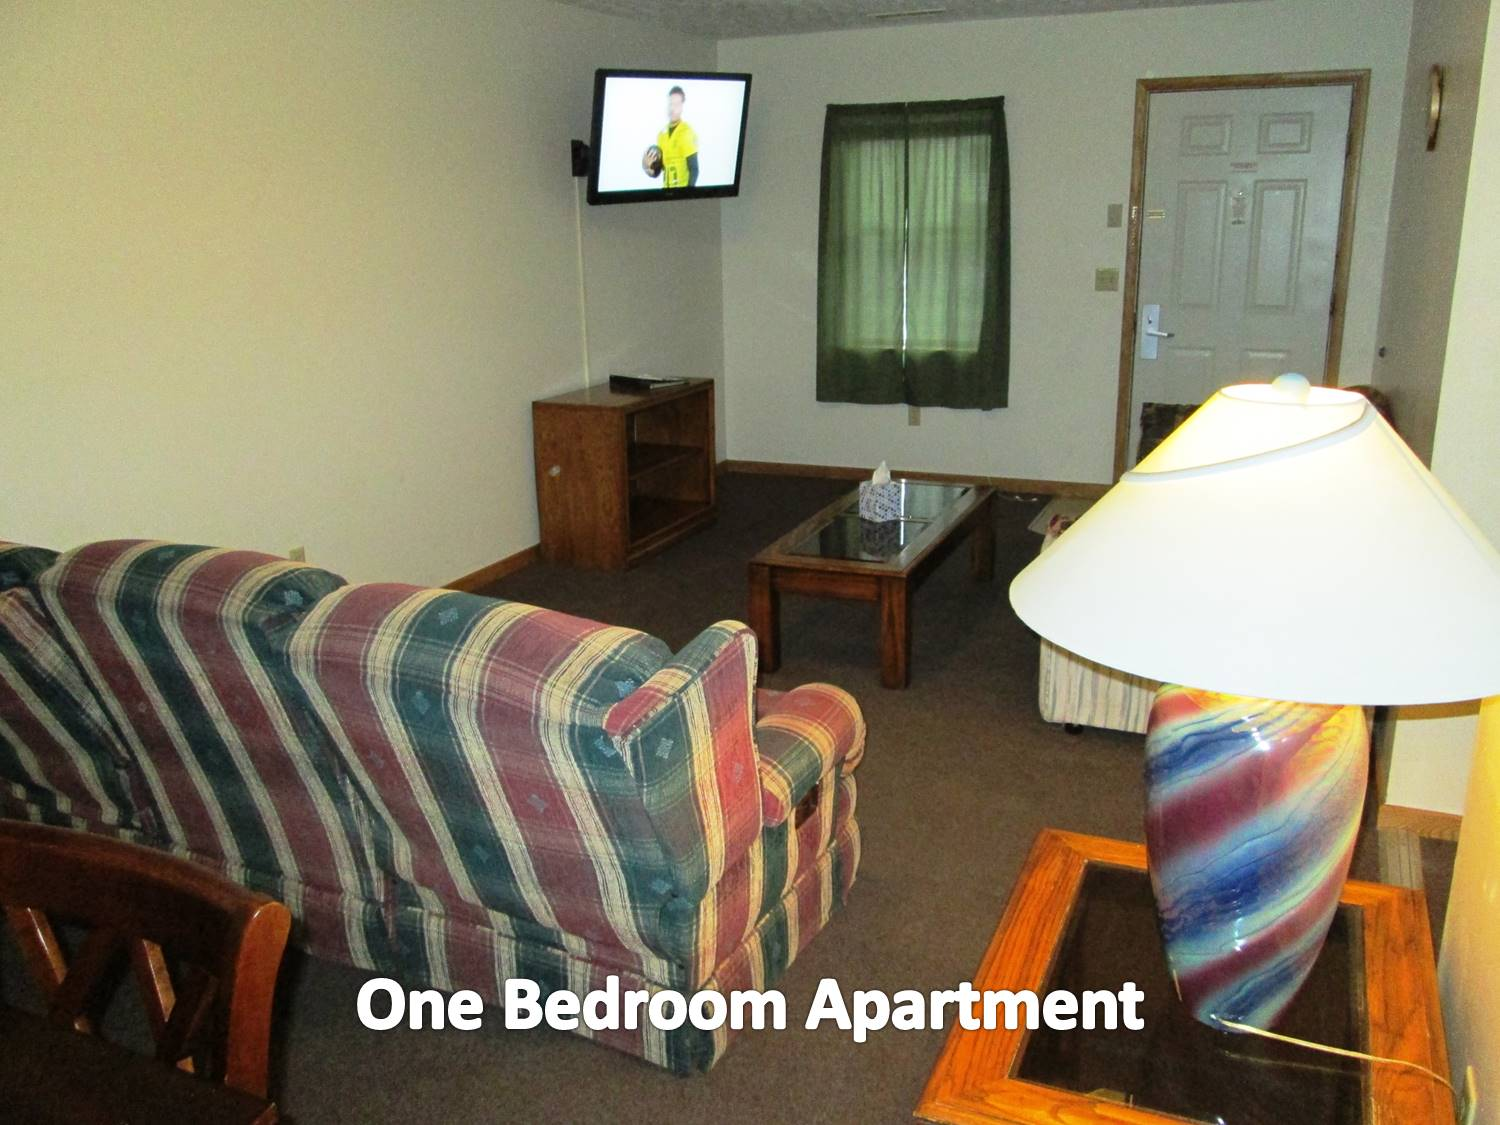 1 bedroom apartment with queen bed, kitchen. lving room with pullout sofa.